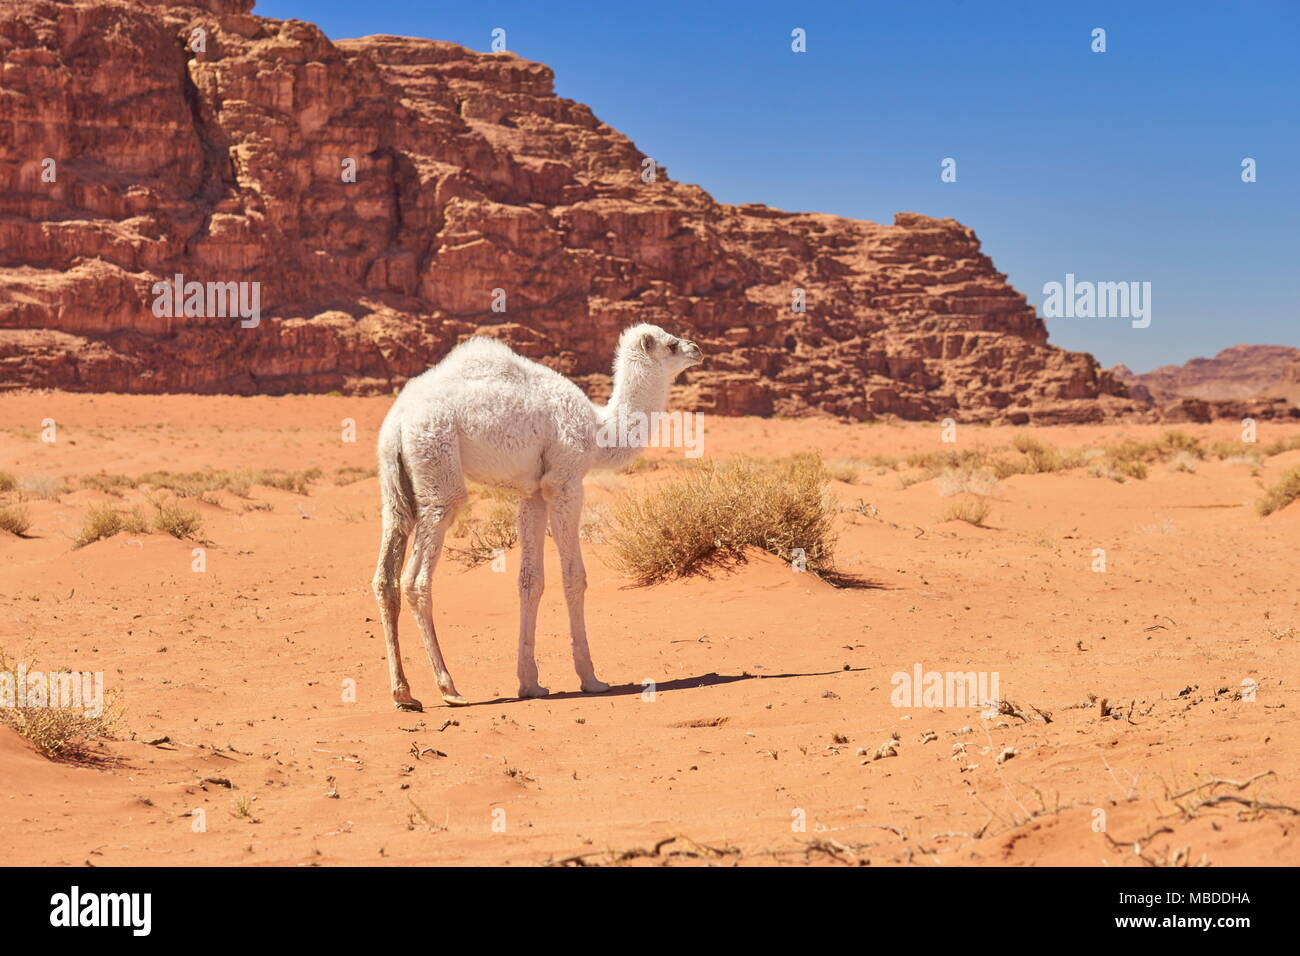 Young baby camel in the Wadi Rum Desert, Jordan - Stock Image